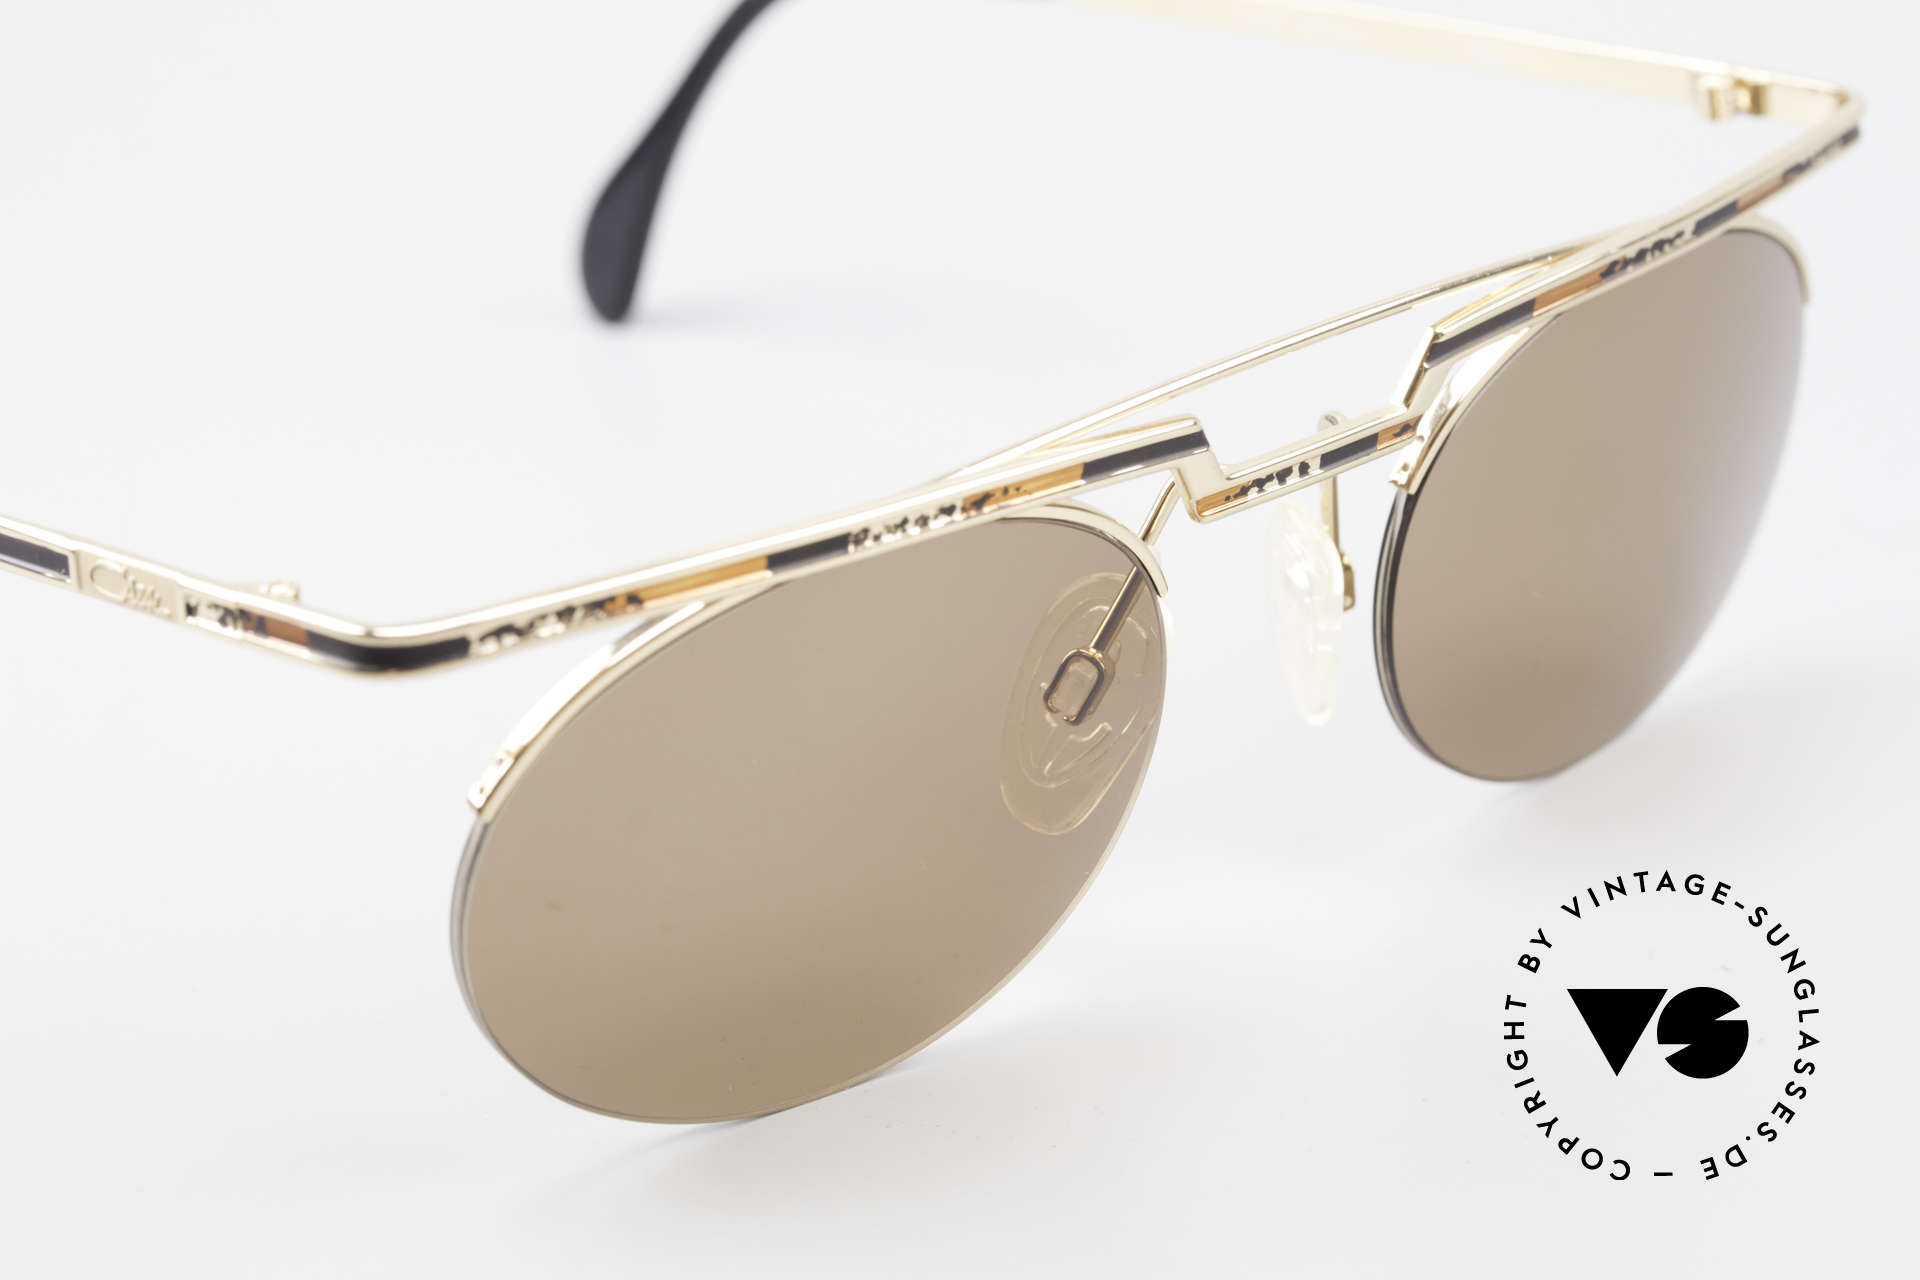 Cazal 758 Original Cazal Sunglasses 90's, tangible high-end craftsmanship (frame made in Germany), Made for Men and Women